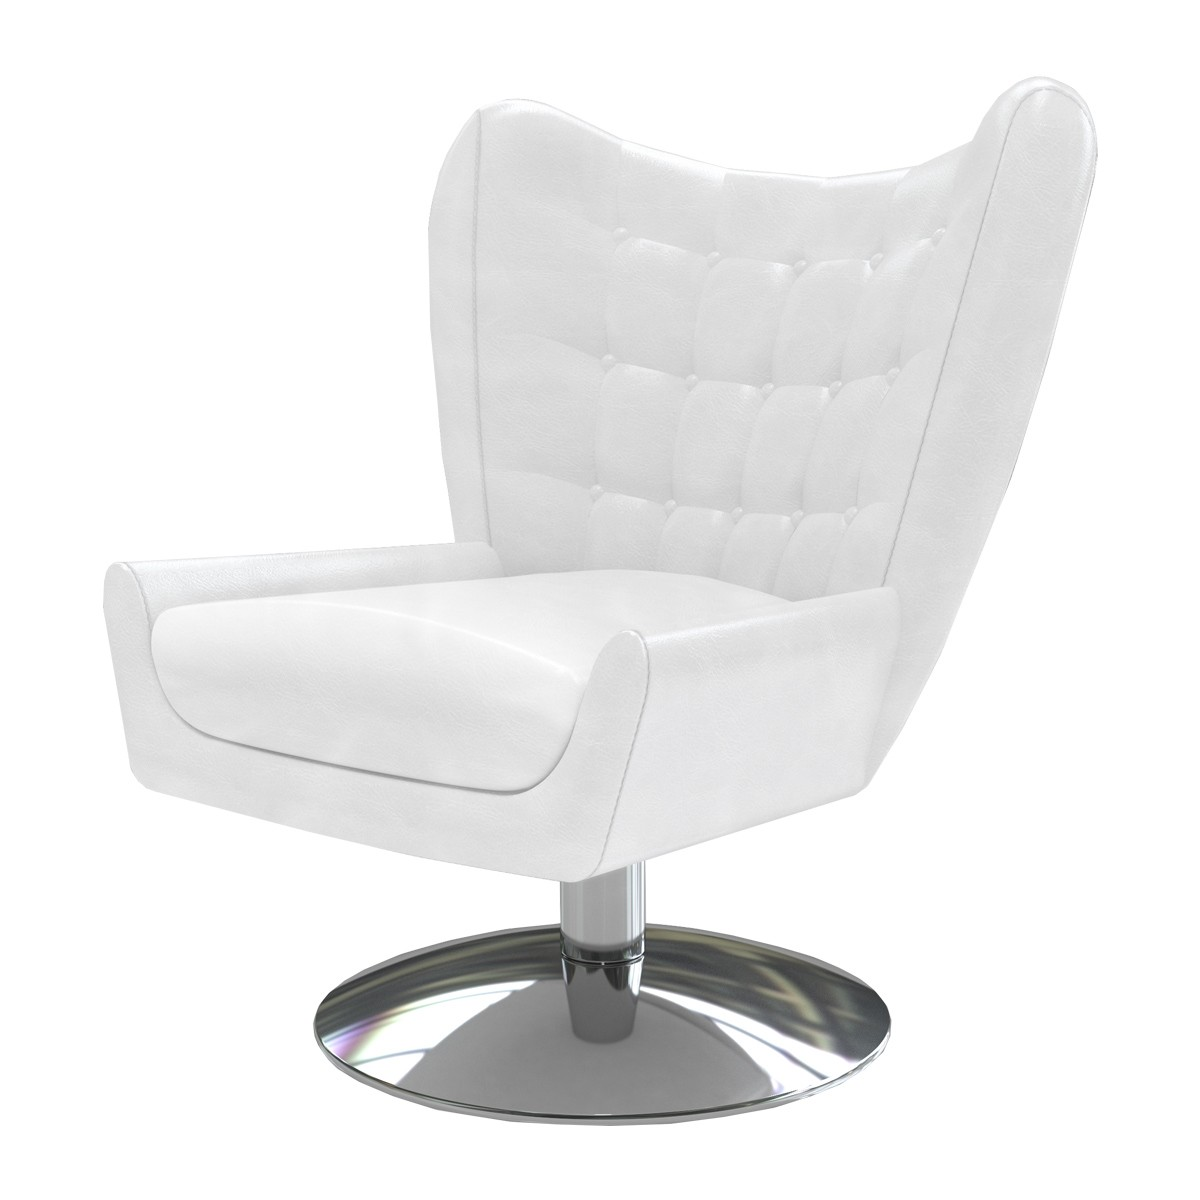 Loungesessel Esszimmer Drehsessel Sessel Loungesessel Clubsessel Modern